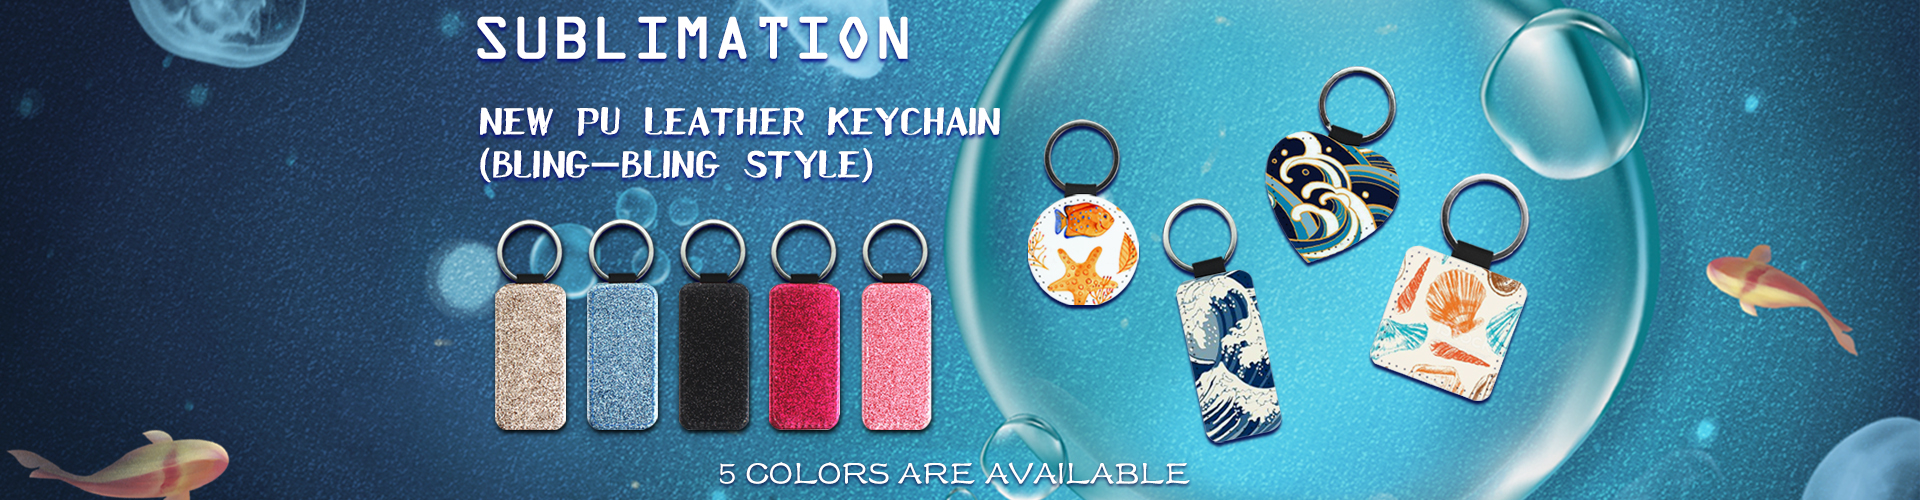 Exquisite Sublimation keychain